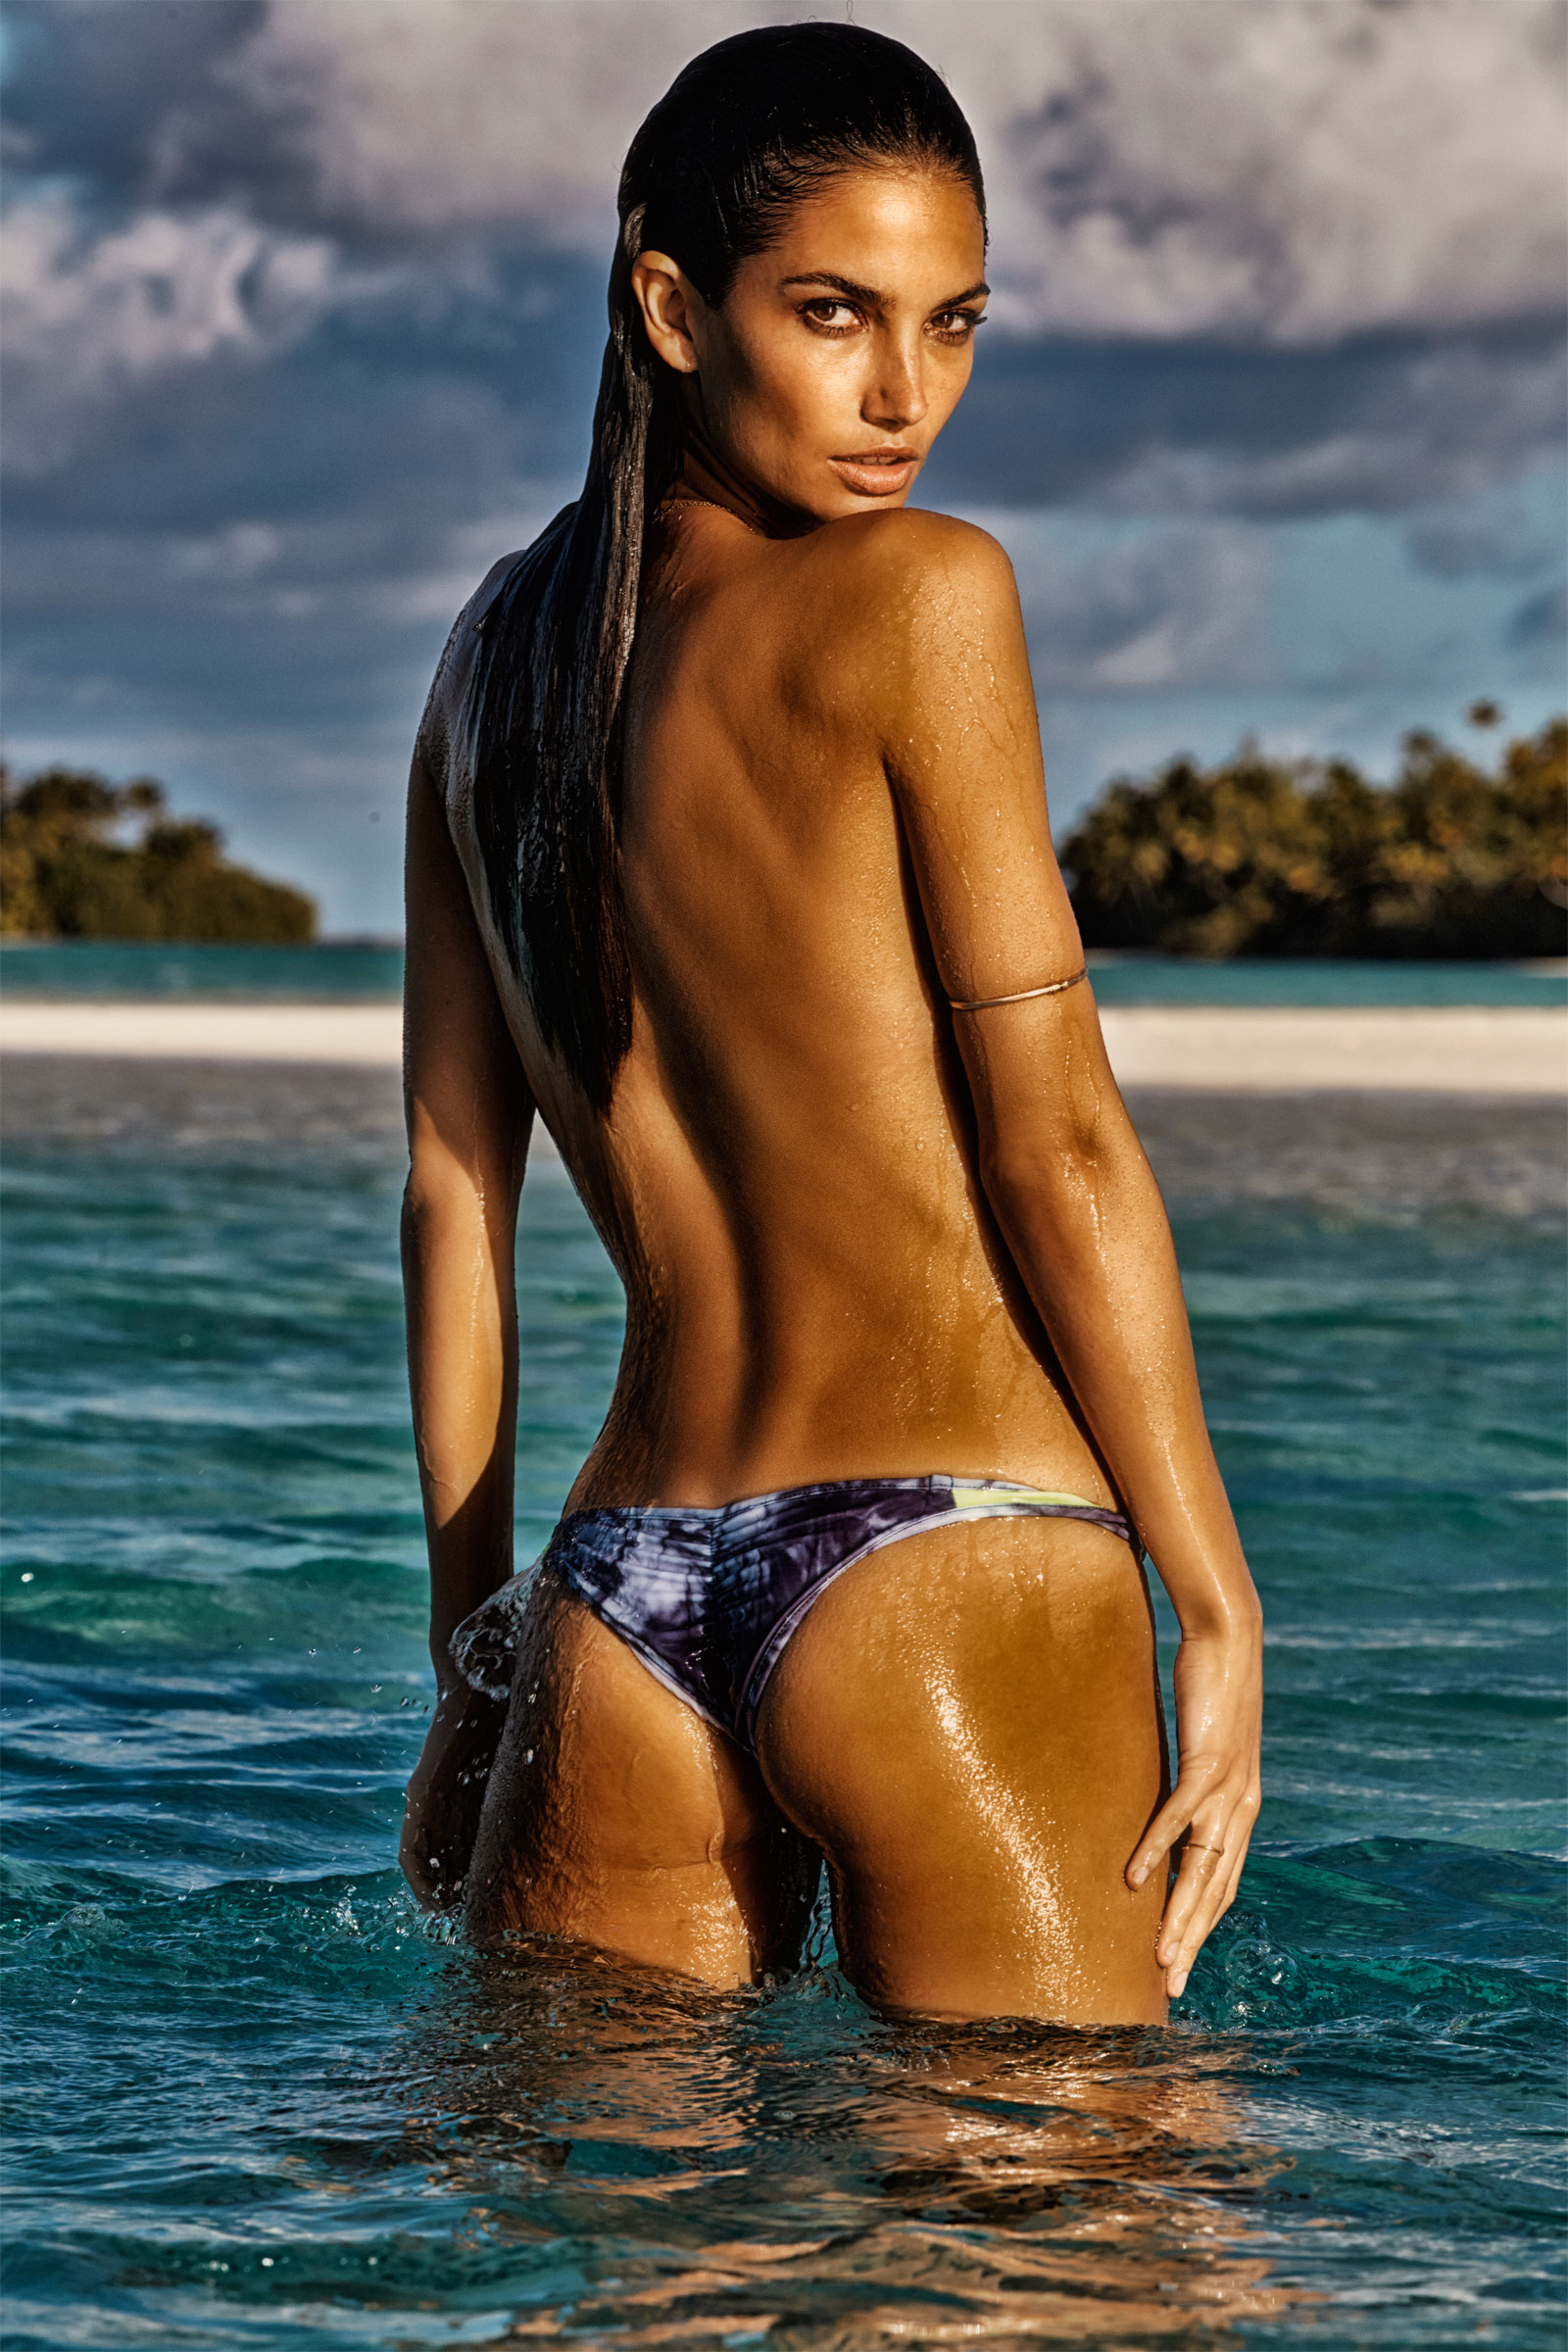 SI Swimsuit Rookie Models 2014 High-Def Gallery